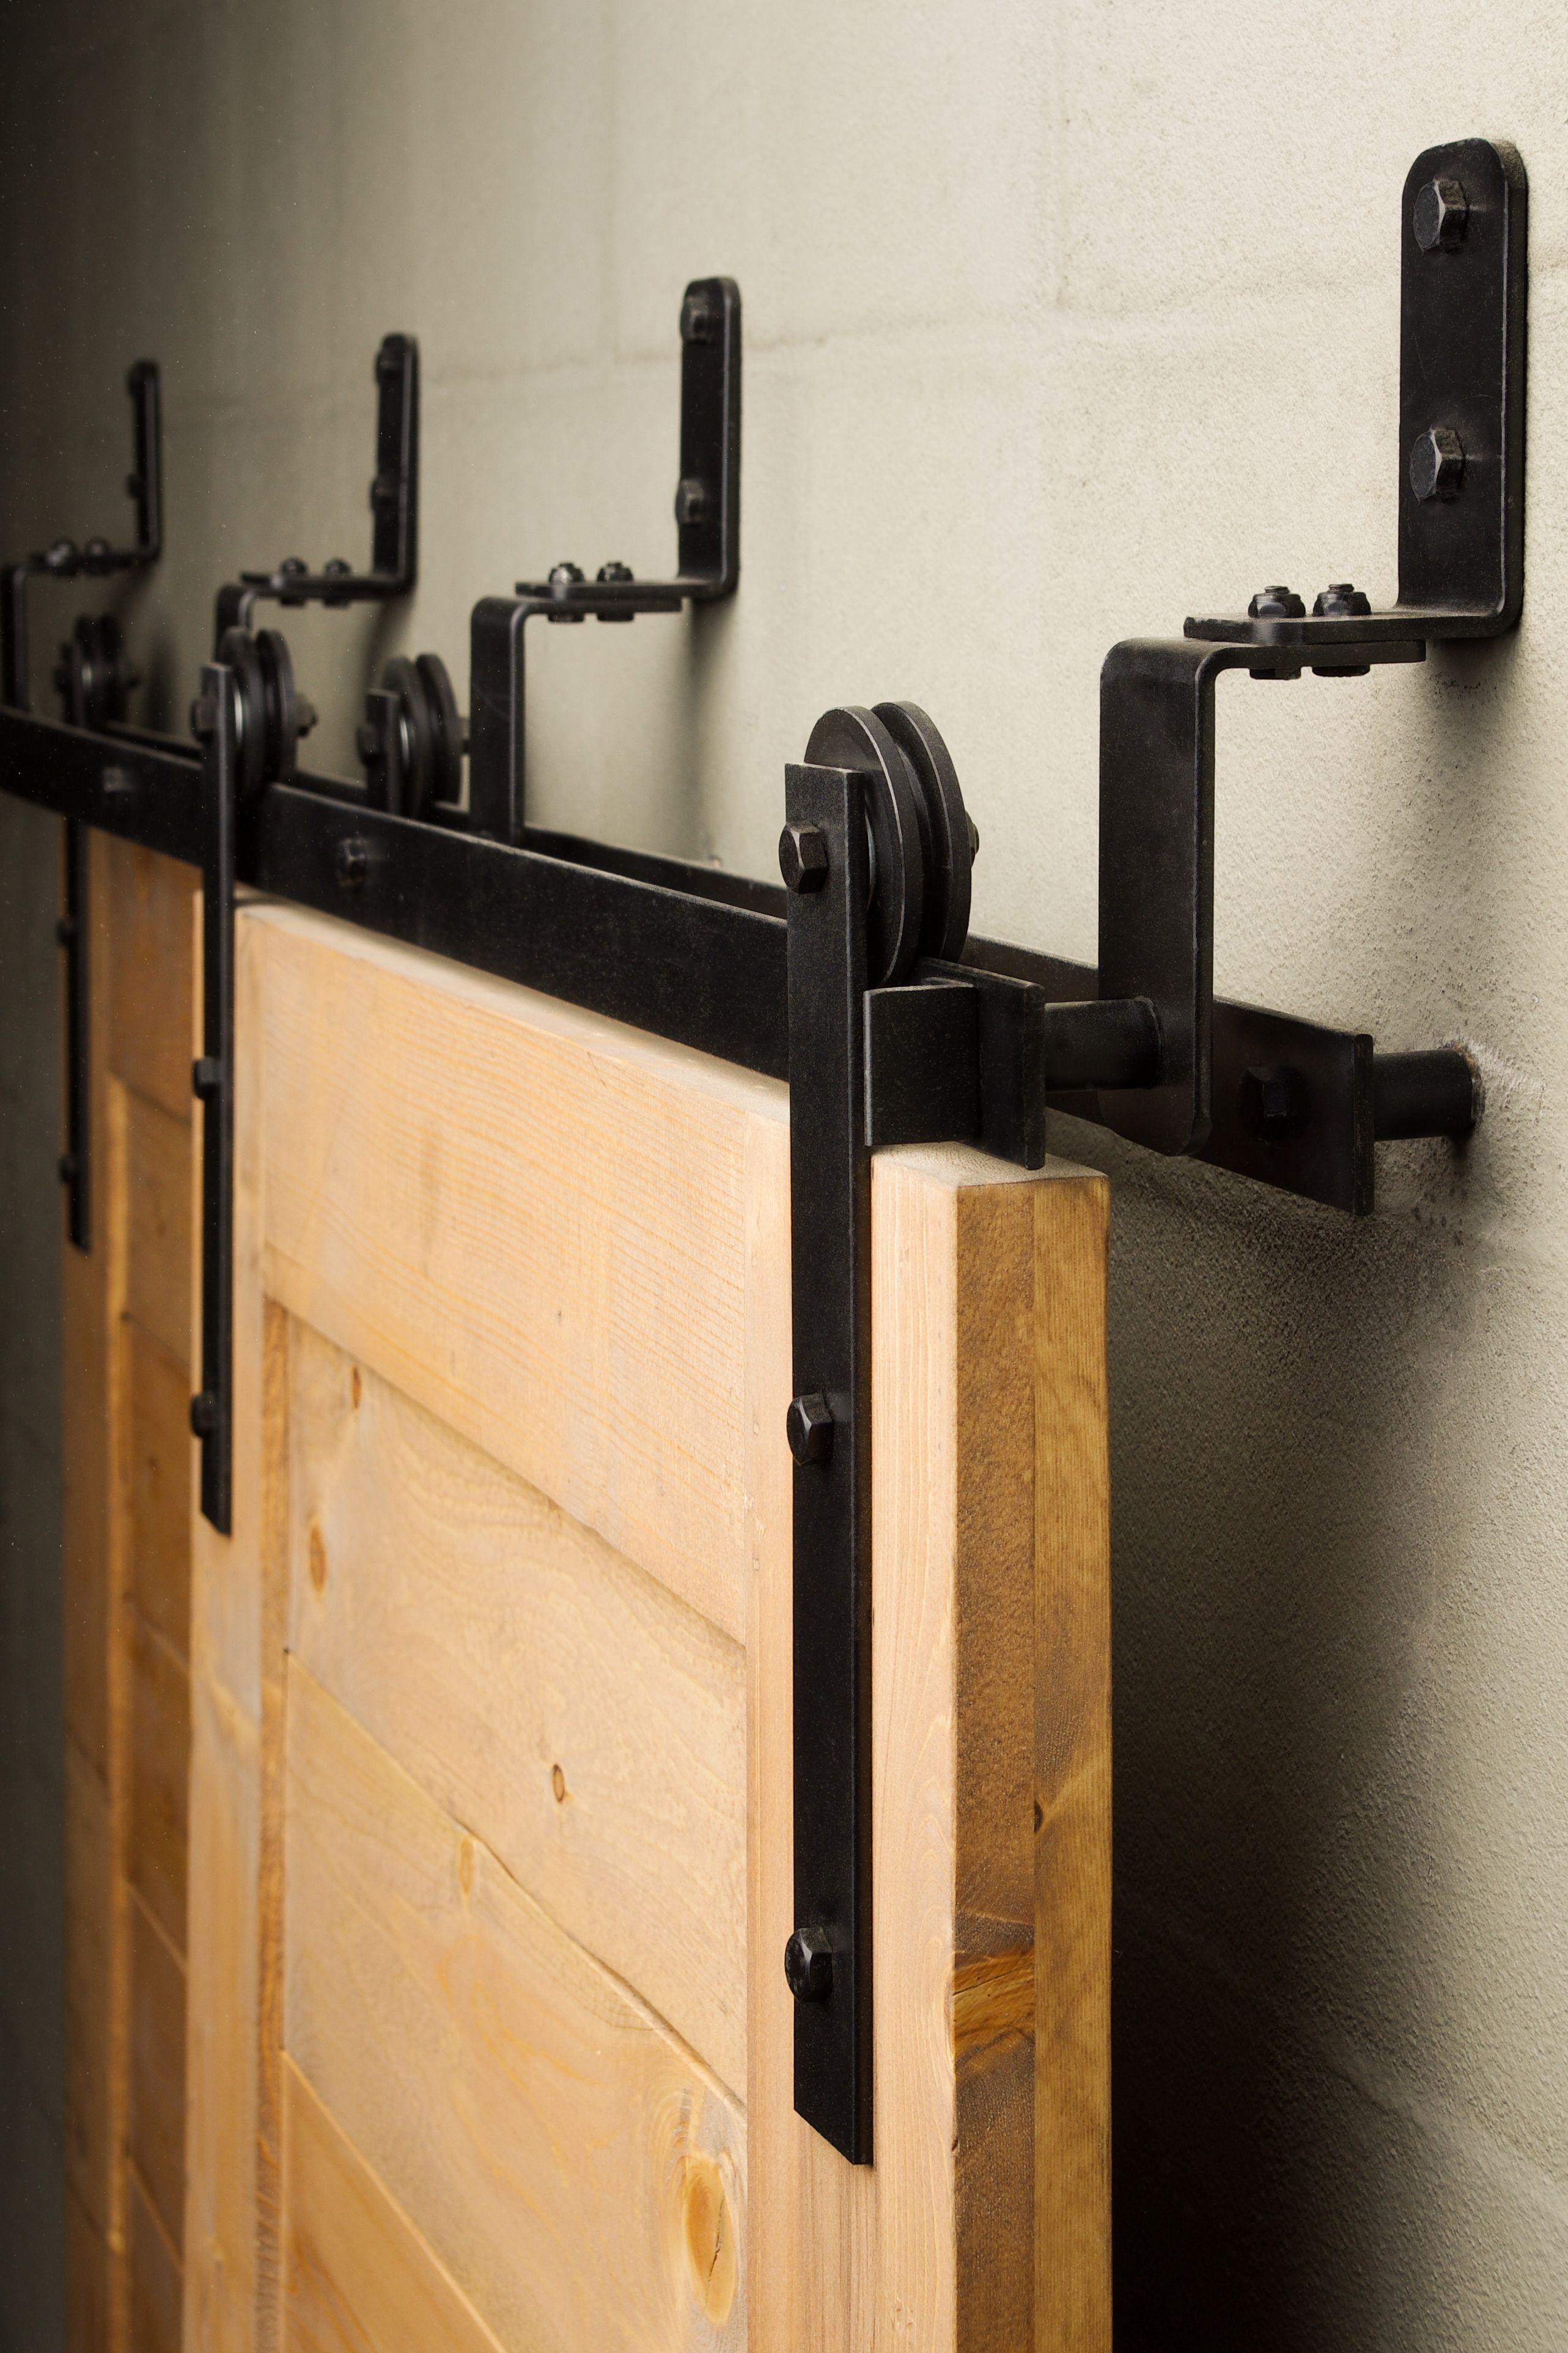 Byp Sliding Barn Door Hardware Is The Perfect Solution To Installations That Have Limited E Purchase Your Doors And At Nw